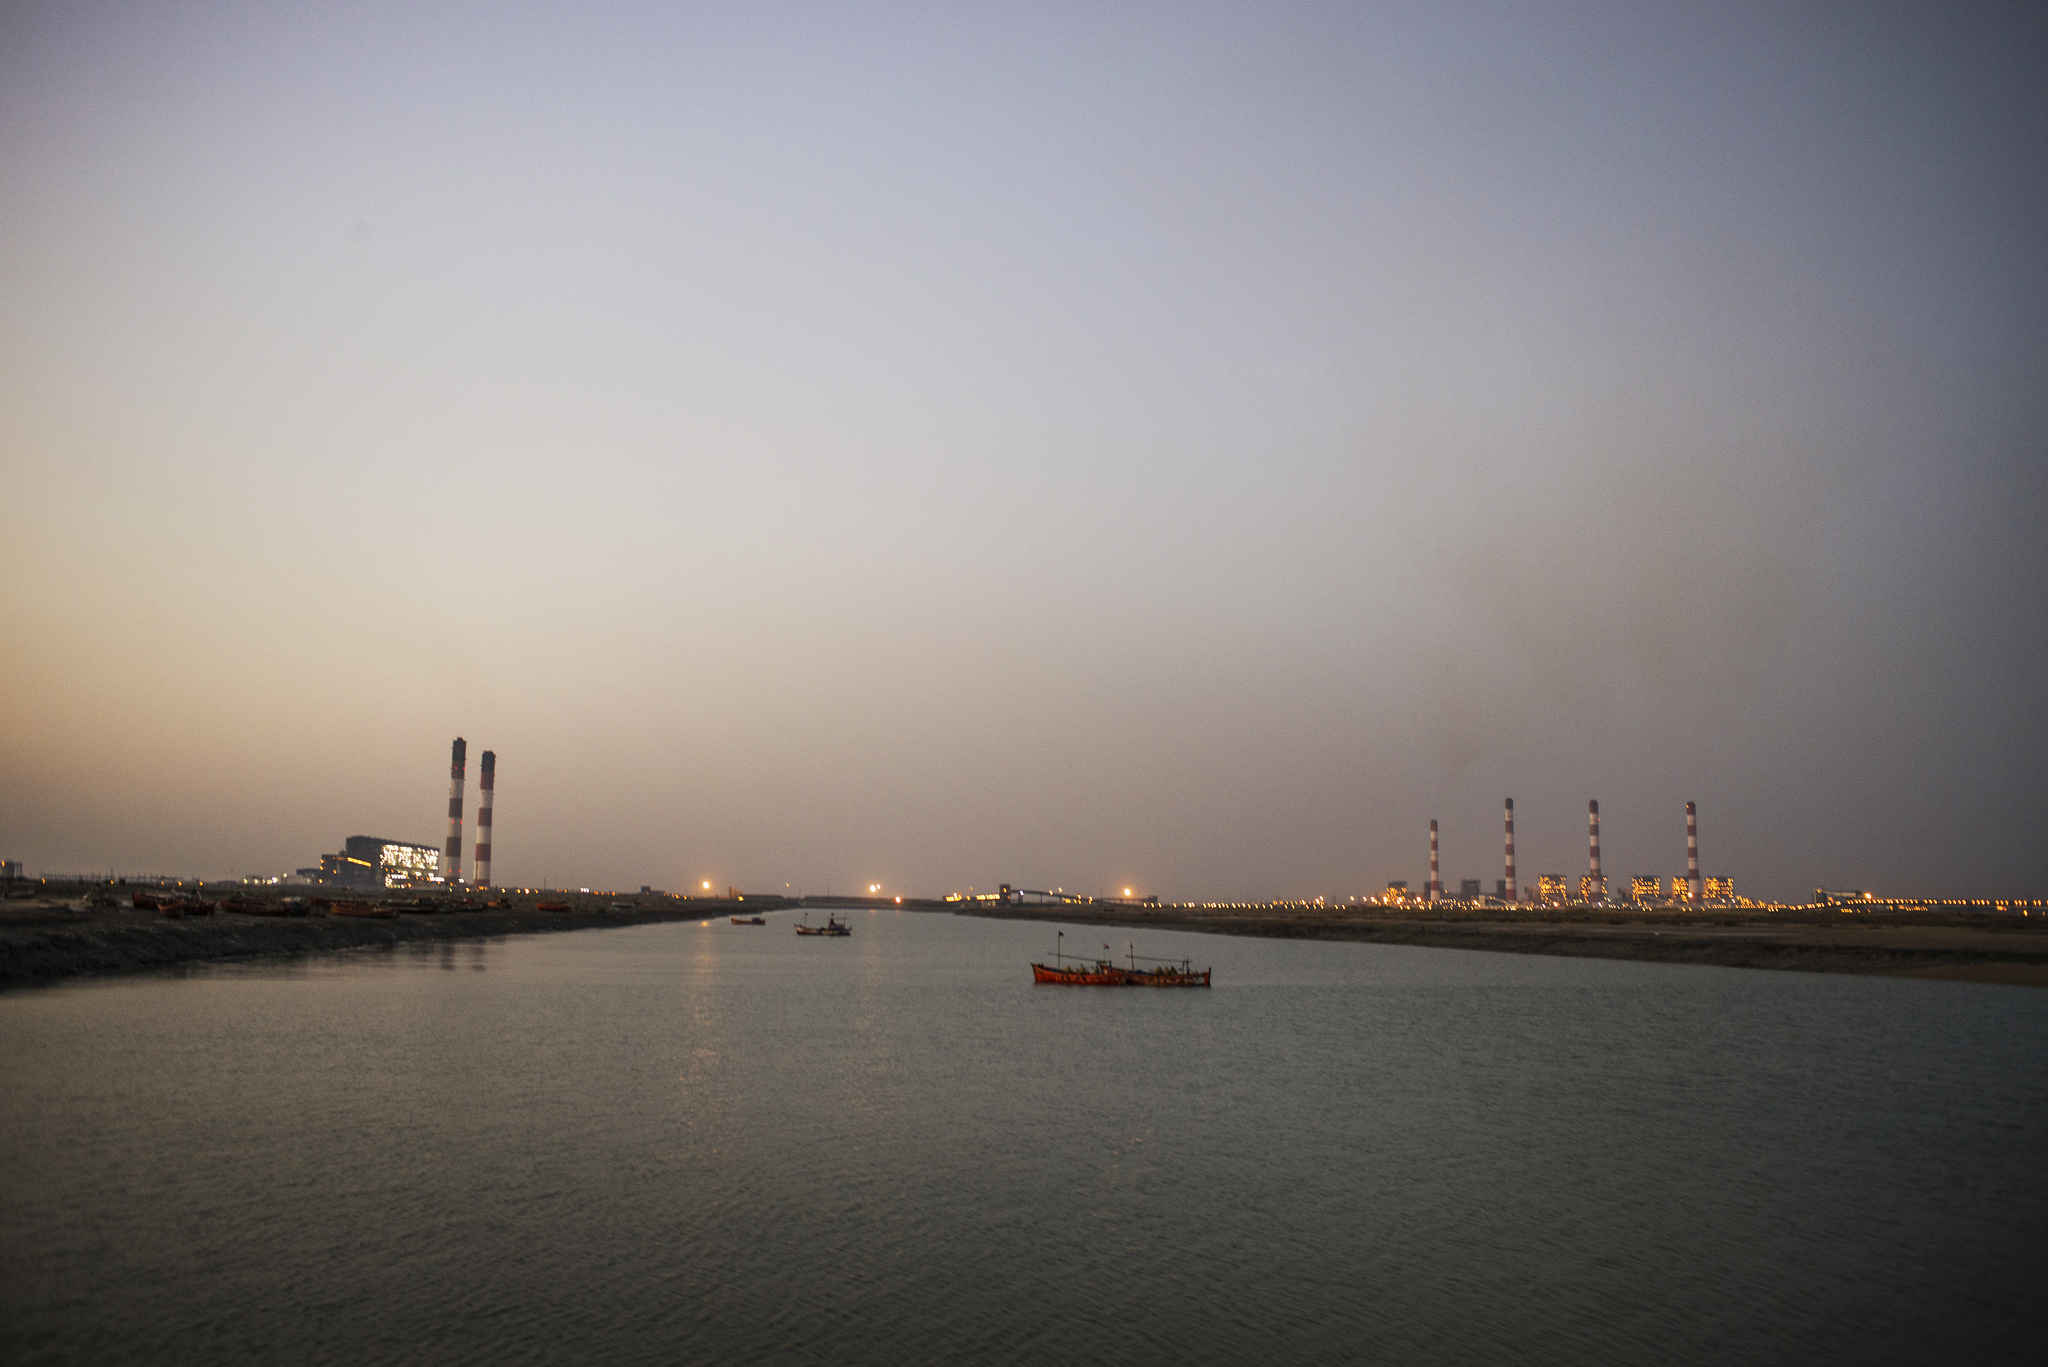 View of the Tata power plant (on the left) and the Adani power plant (on right) at Mundra, Gujarat. Credit: Sami Siva / ICIJ